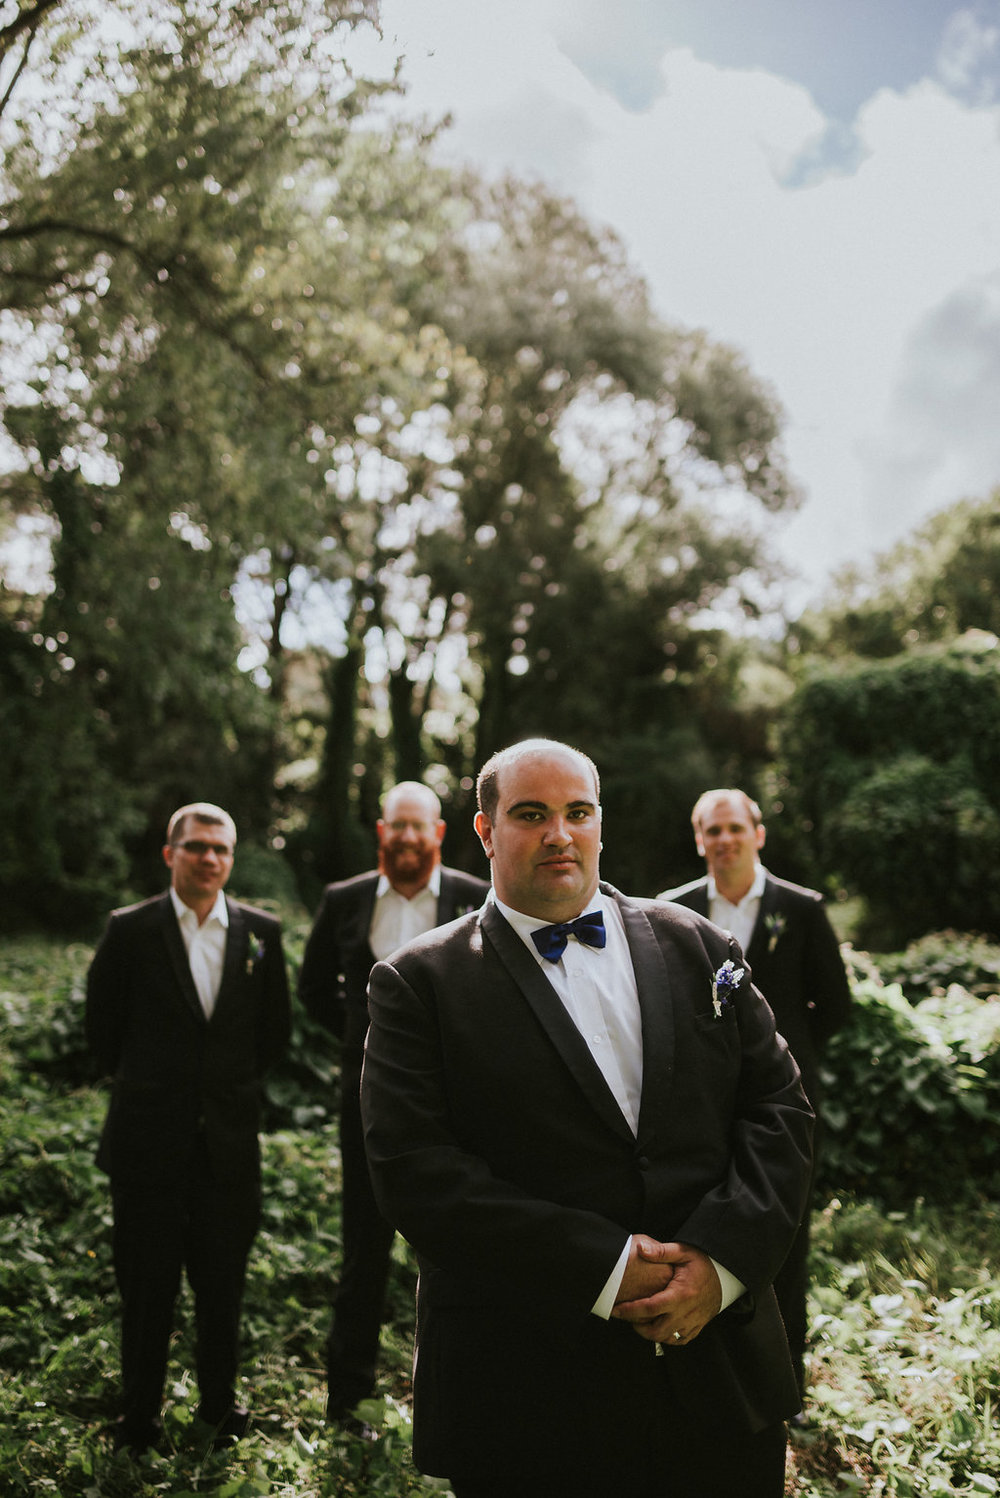 Boys in their suits | Astra bride Joanne | Bonny 1500 | Cassels venue | Chris Turner Photography